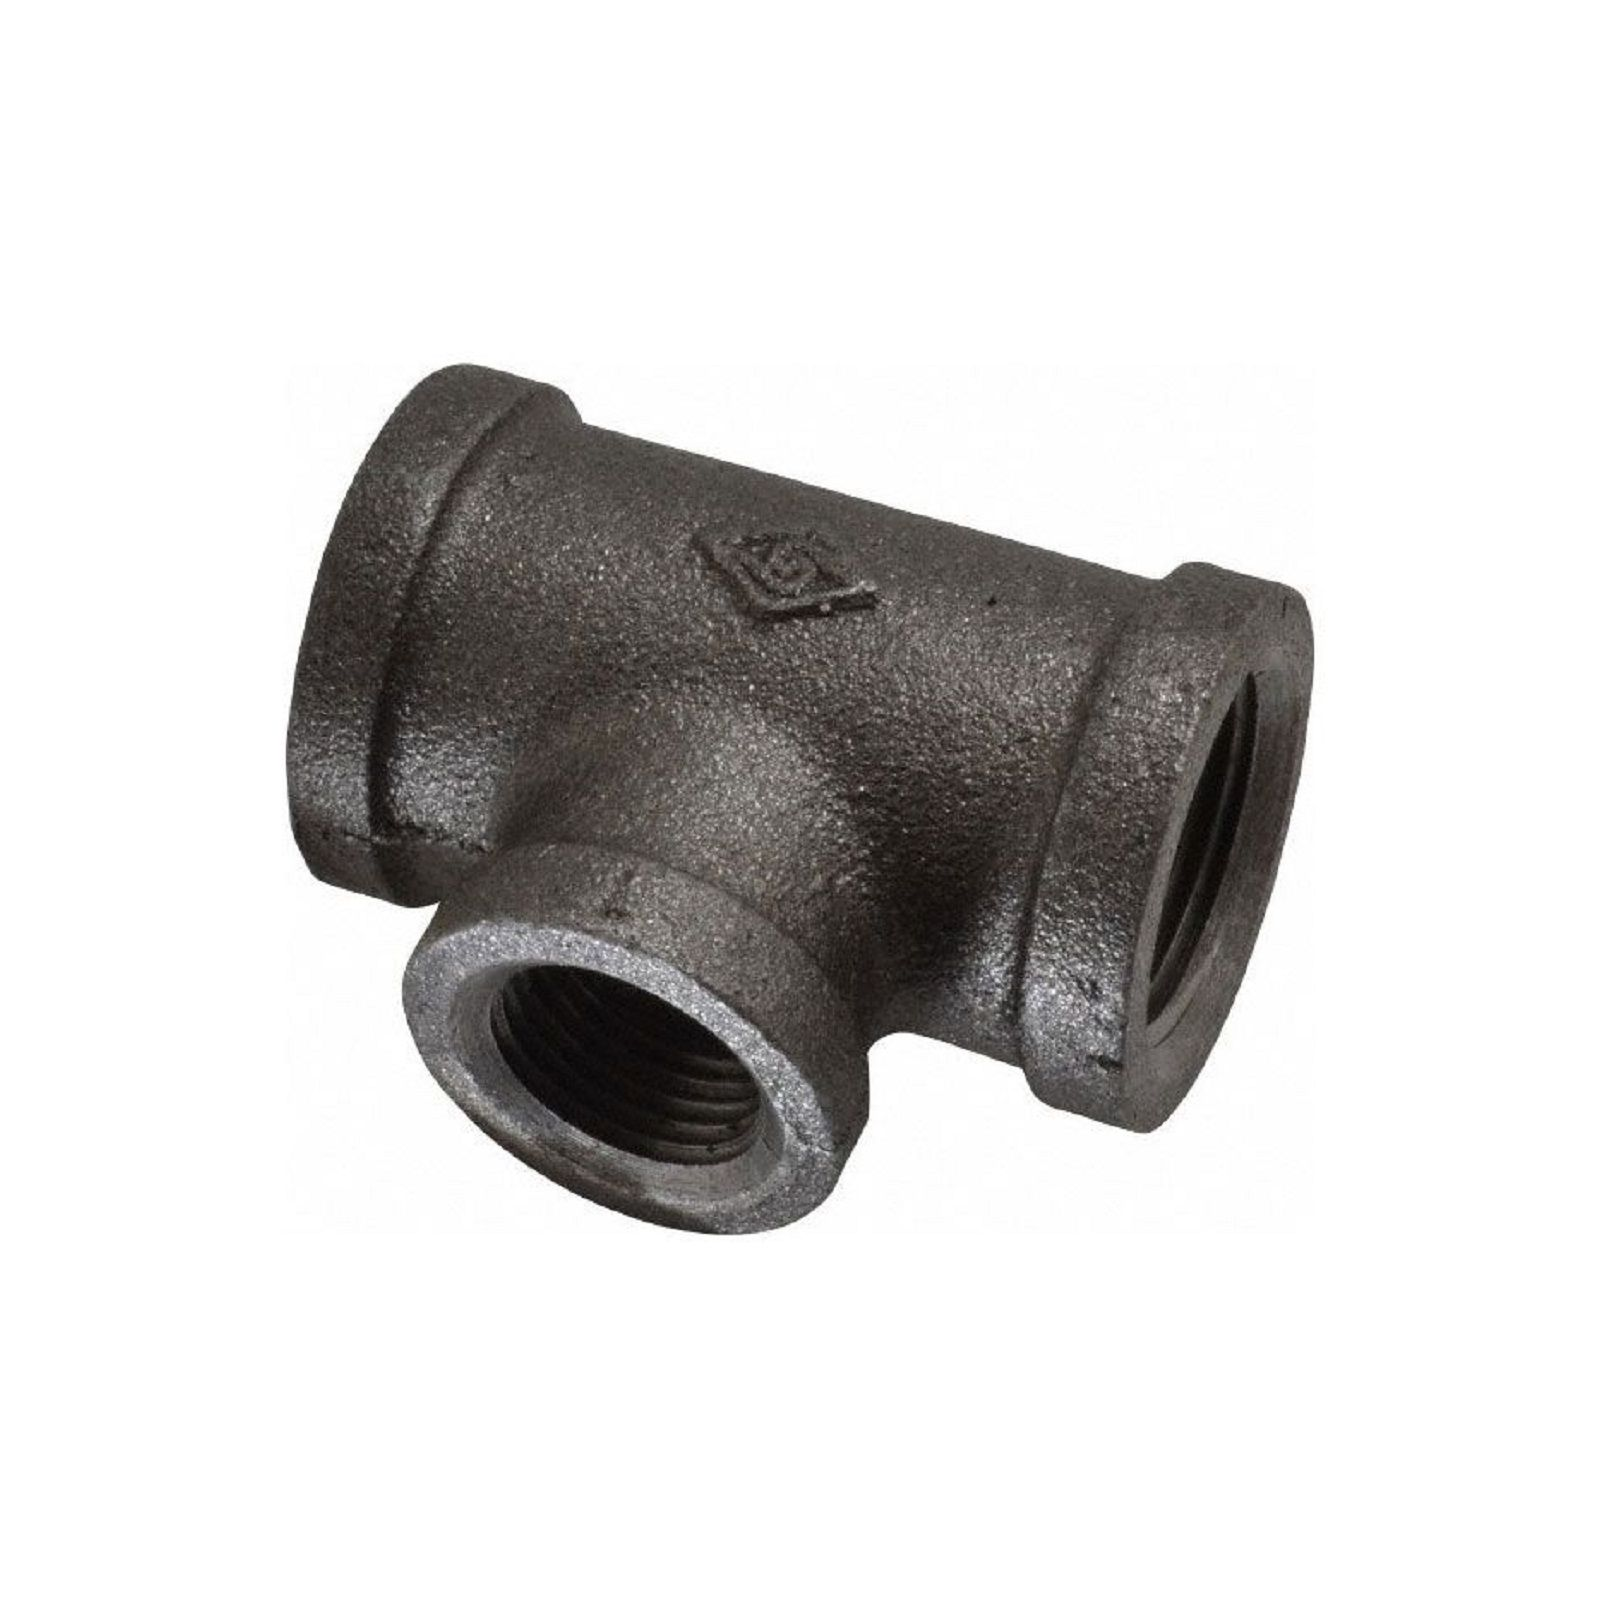 "Southland 520-743 - Black Reducing Tee, 3/4"" X 3/4"" X 1/2"" I.D."